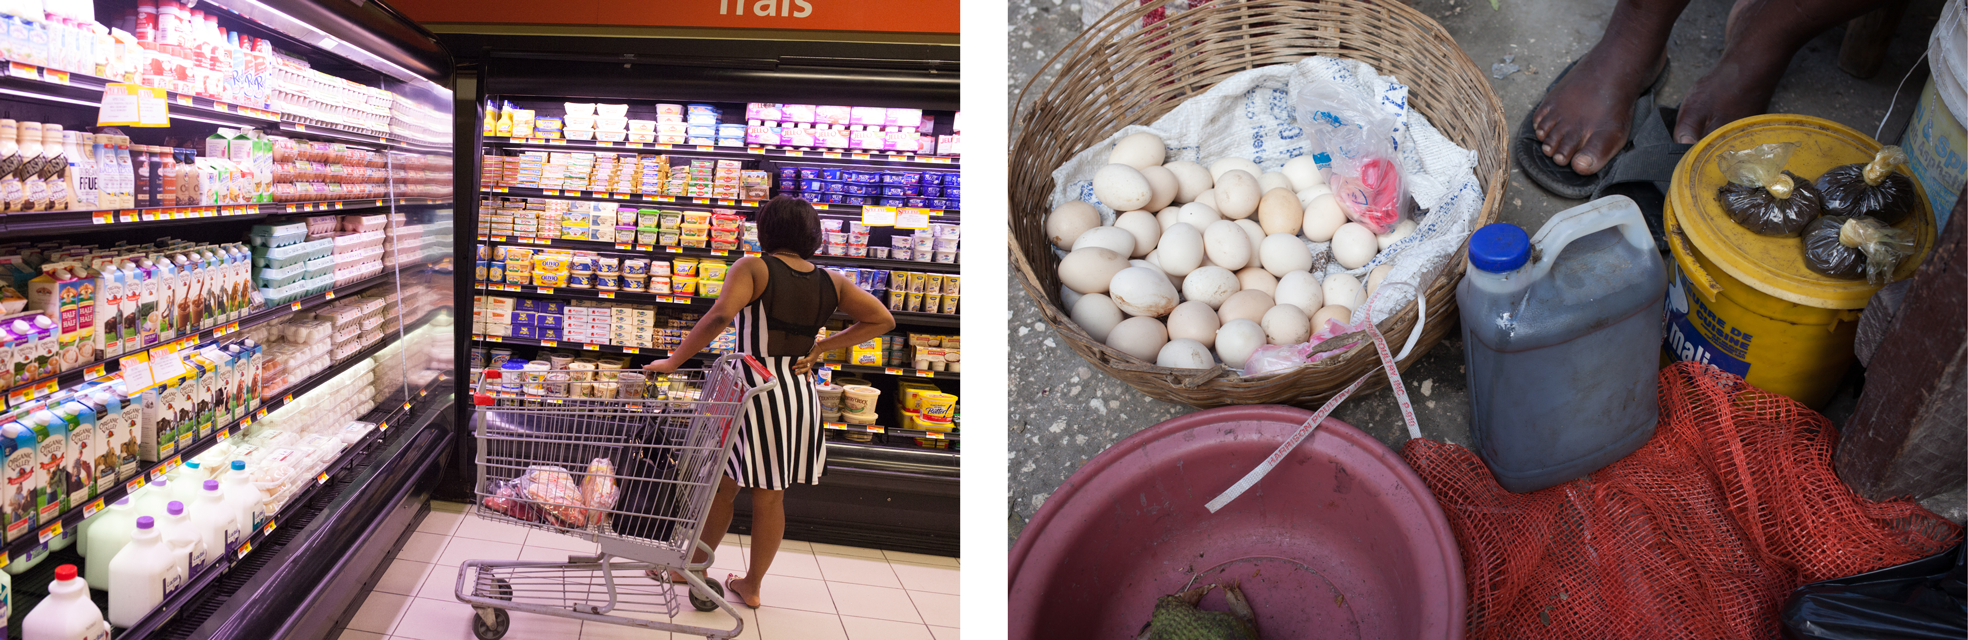 Giant Grocery store in Petionville, Haiti, and an egg seller.